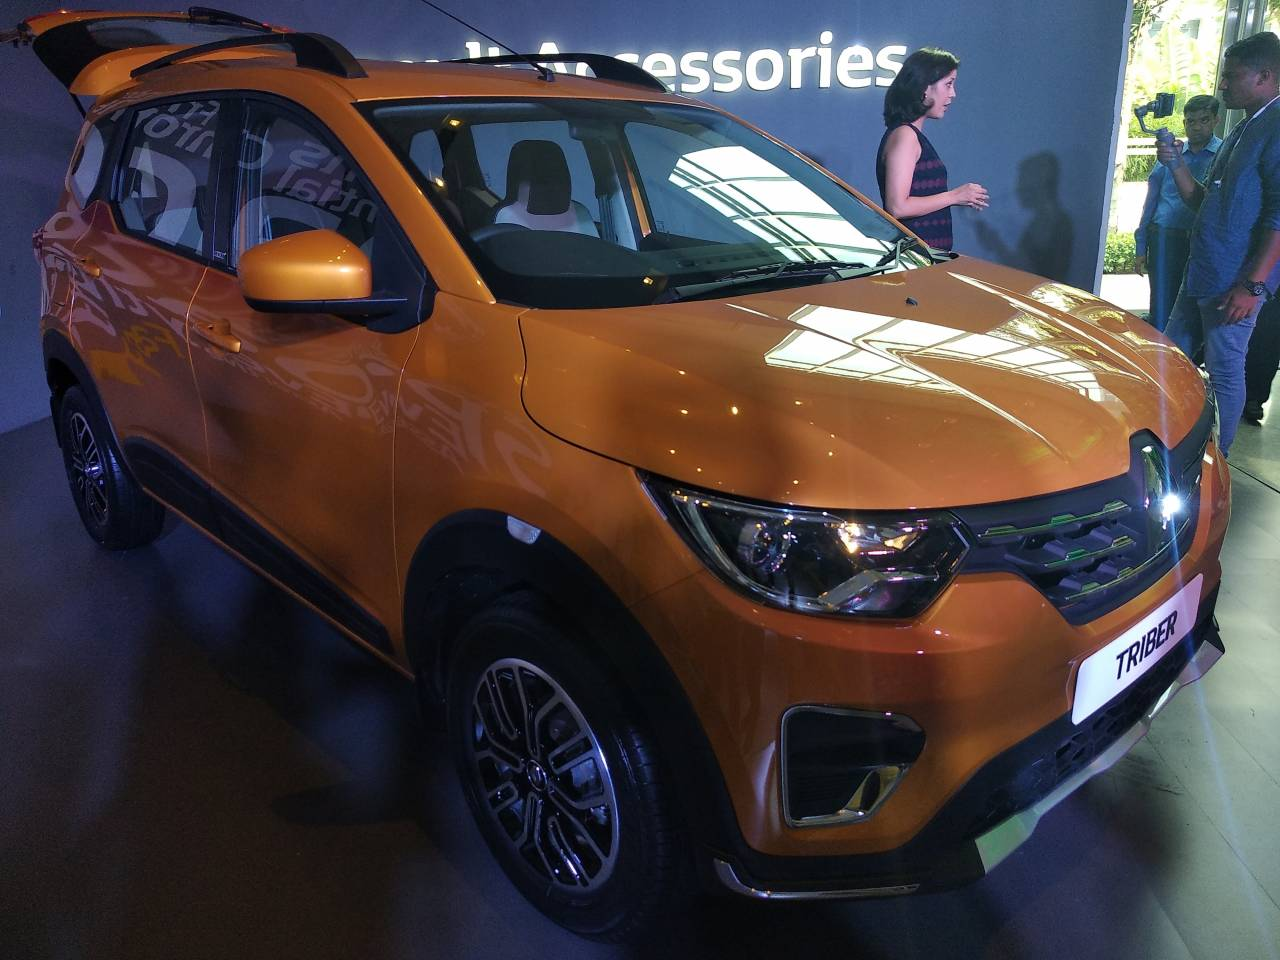 Renault unveils Triber in India: Find out specs and other details here